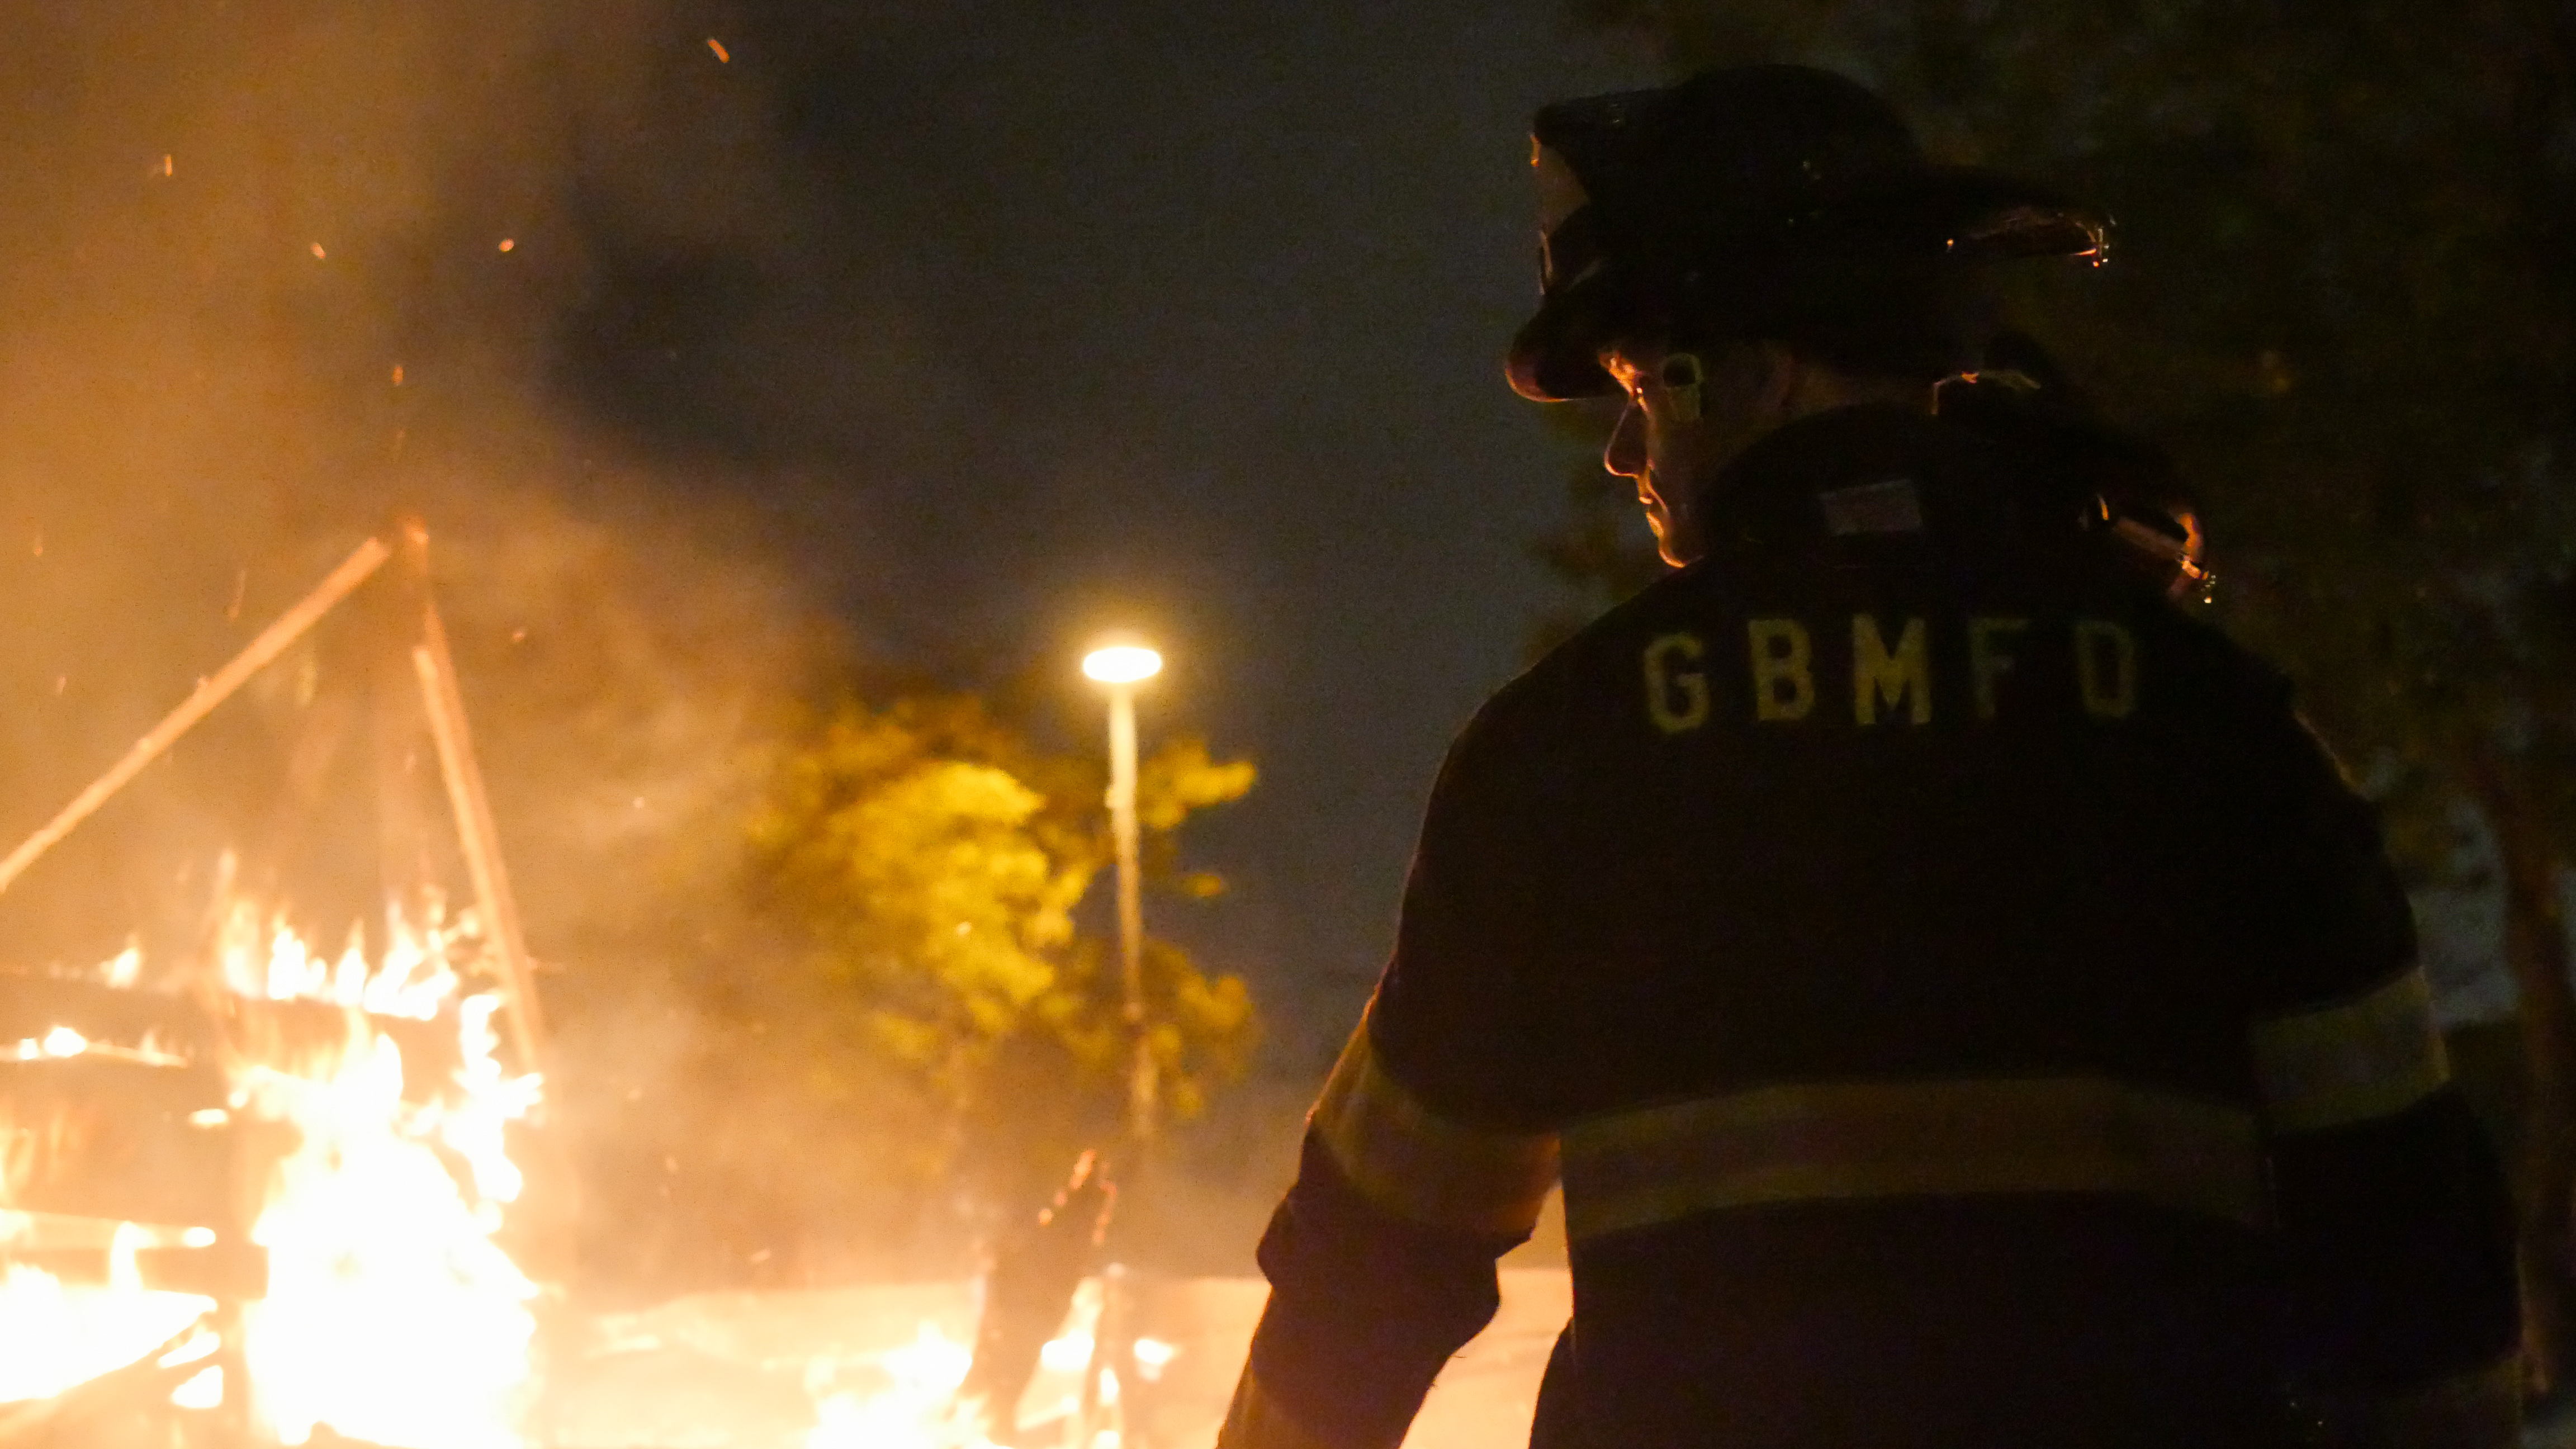 Green Bay Metro Fire Department assisting with a controlled burn at the IgNight Market, Saturday, September 21, 2019 (WCWF/ Beni Petersen)